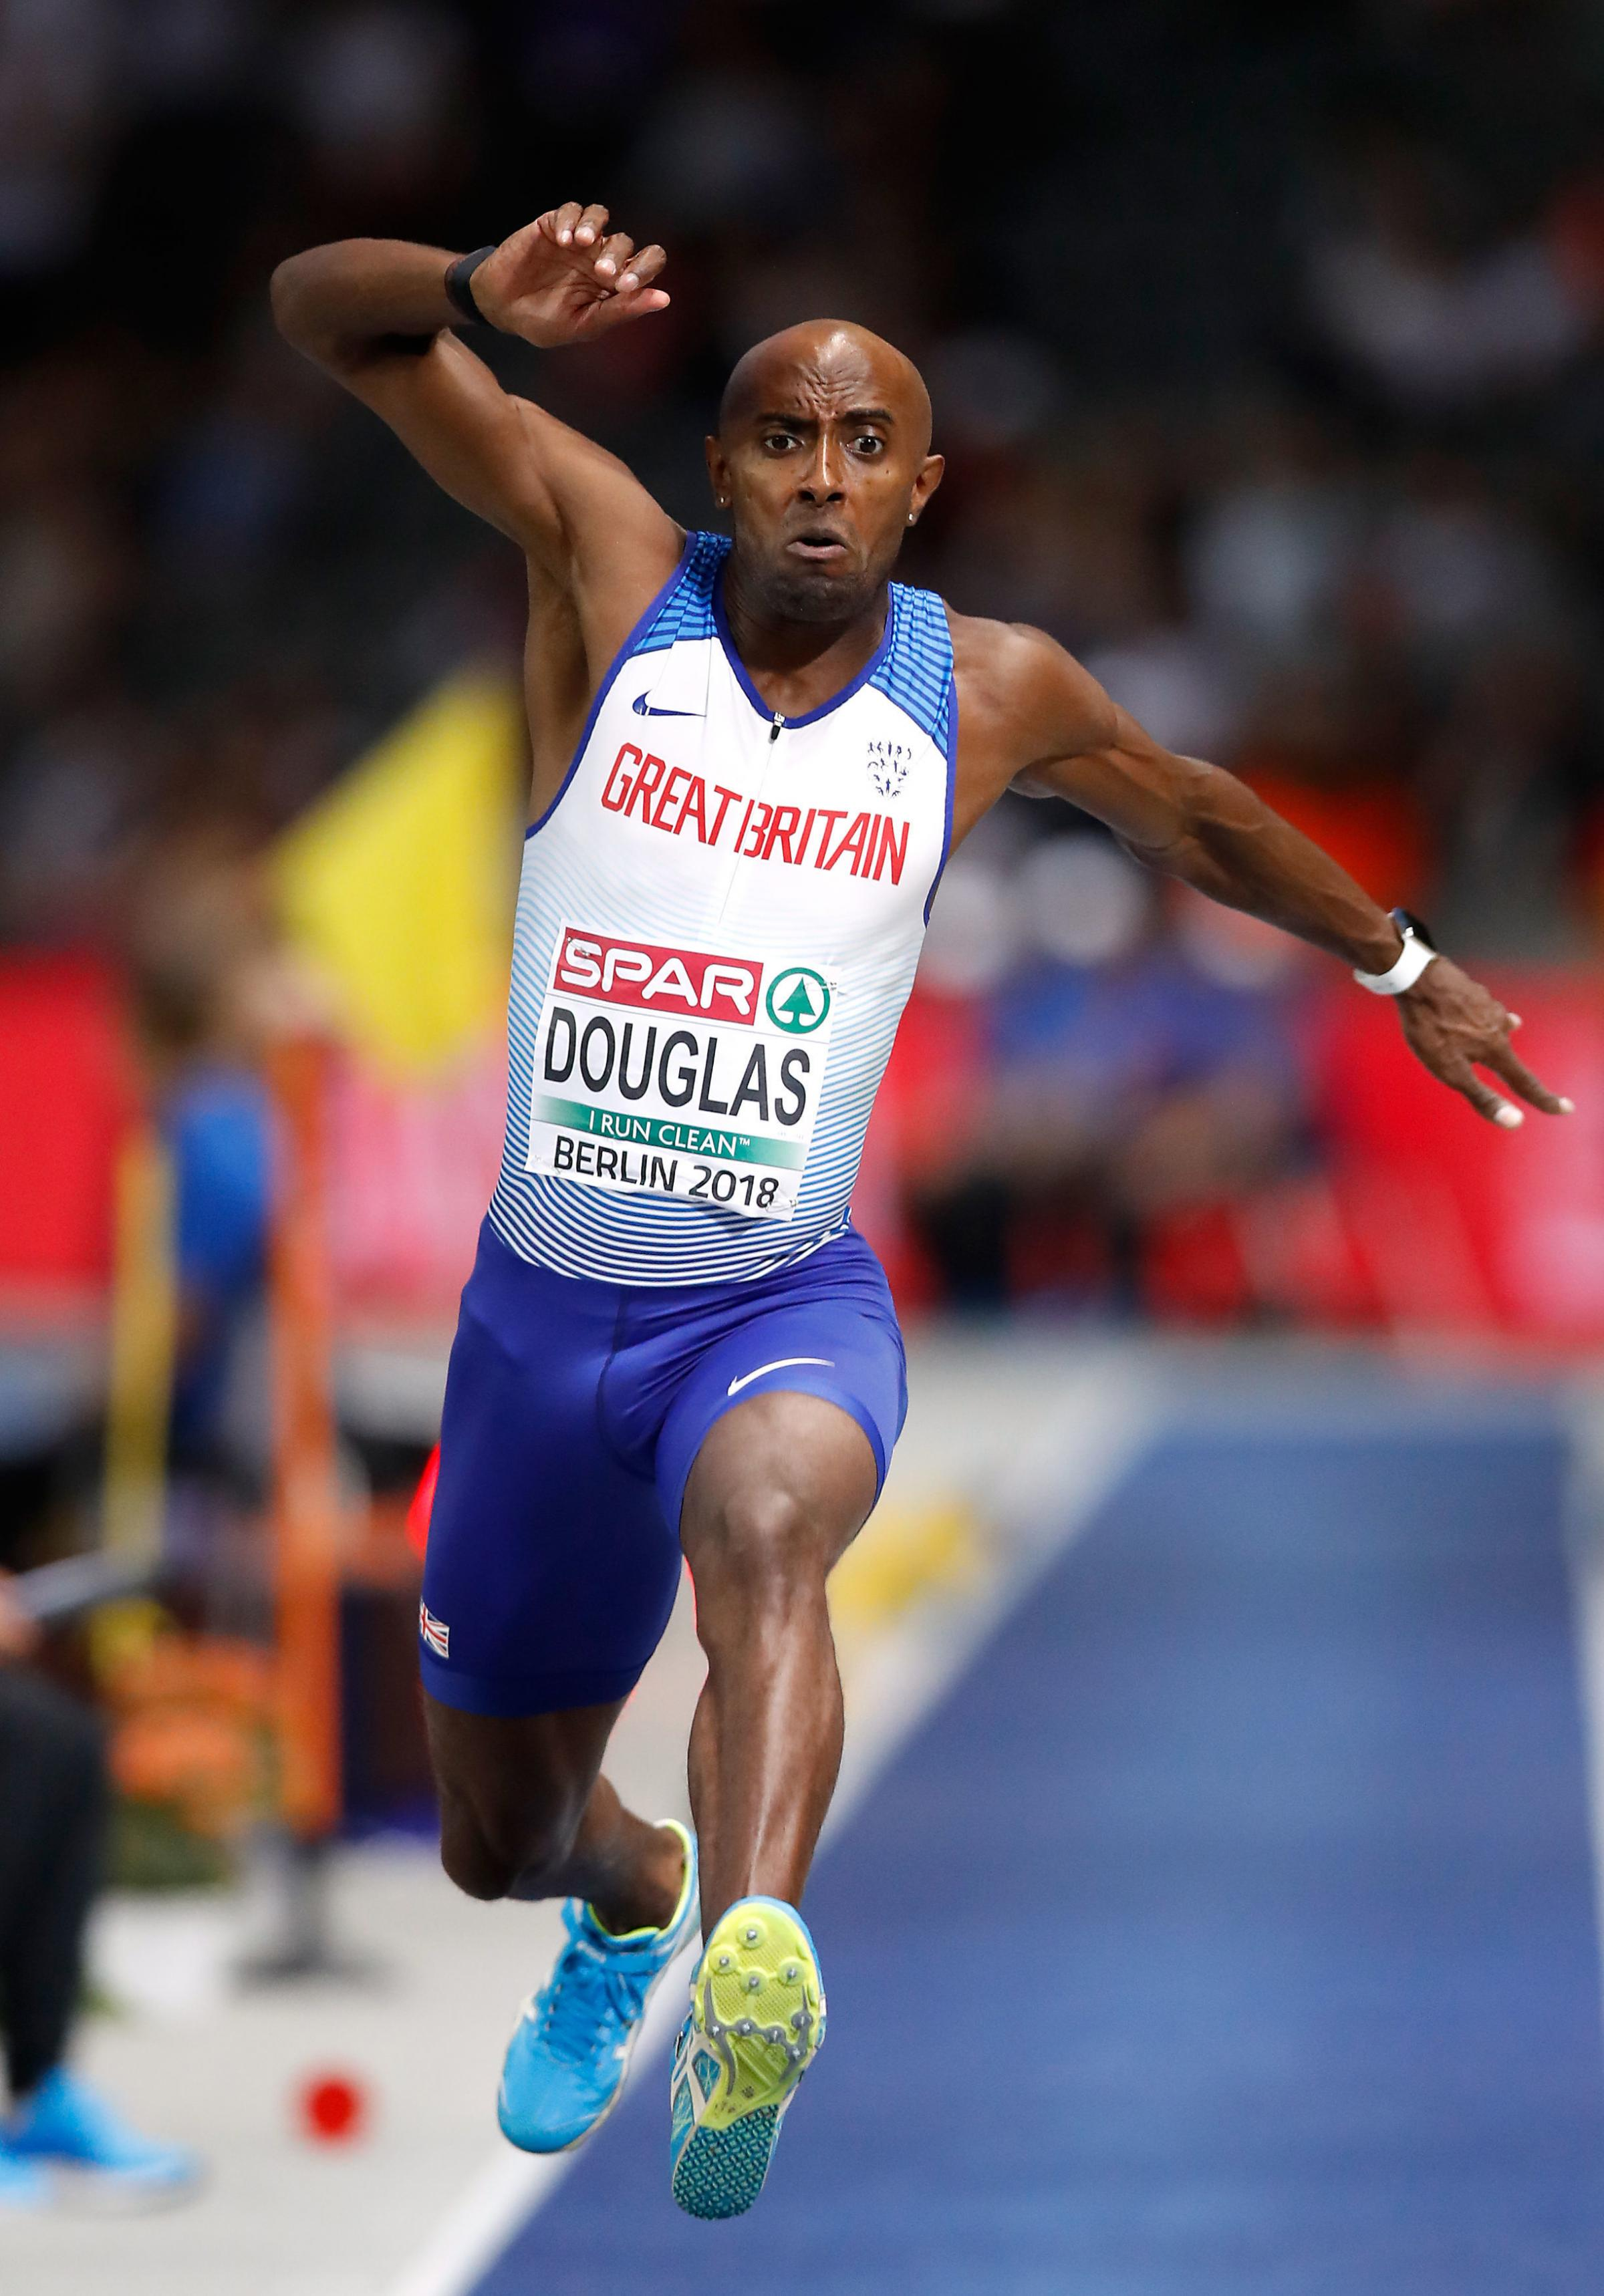 CLOSE: Nathan Douglas in full flow during the men's triple jump finalPicture: Martin Rickett/PA Wire